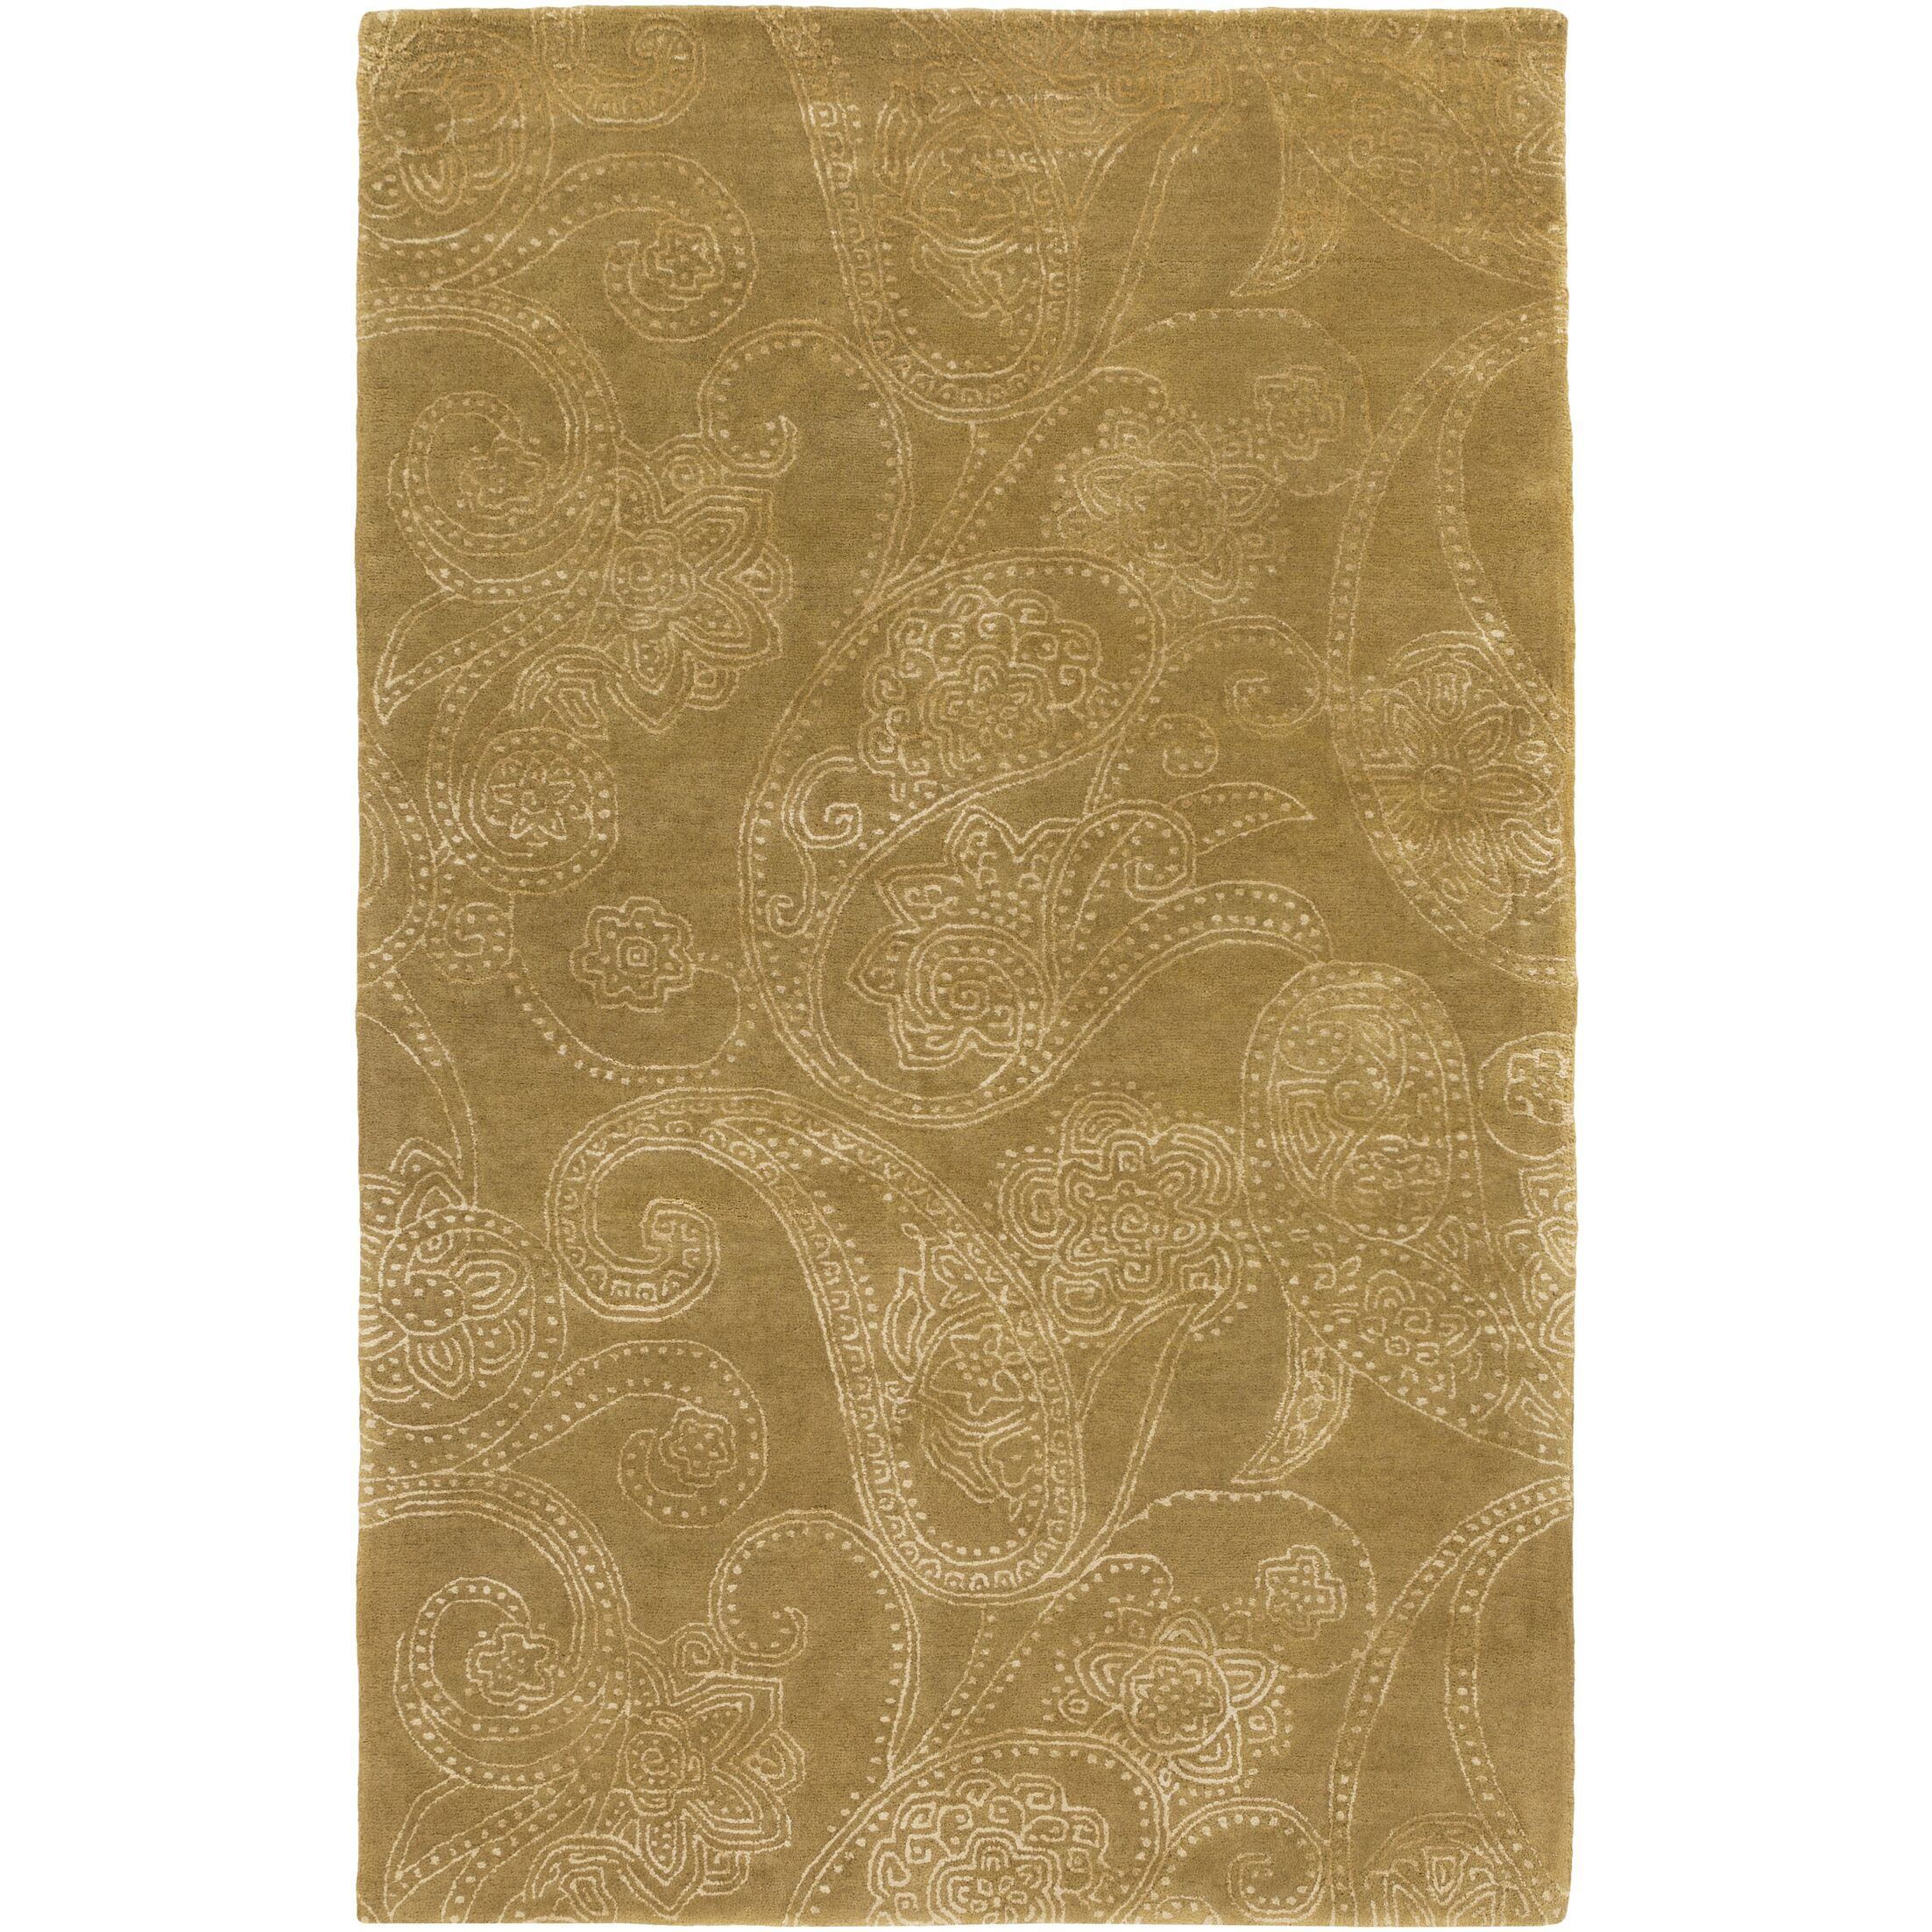 Laurita Hand-Tufted Tan/White Area Rug Rug Size: Rectangle 5' x 8'